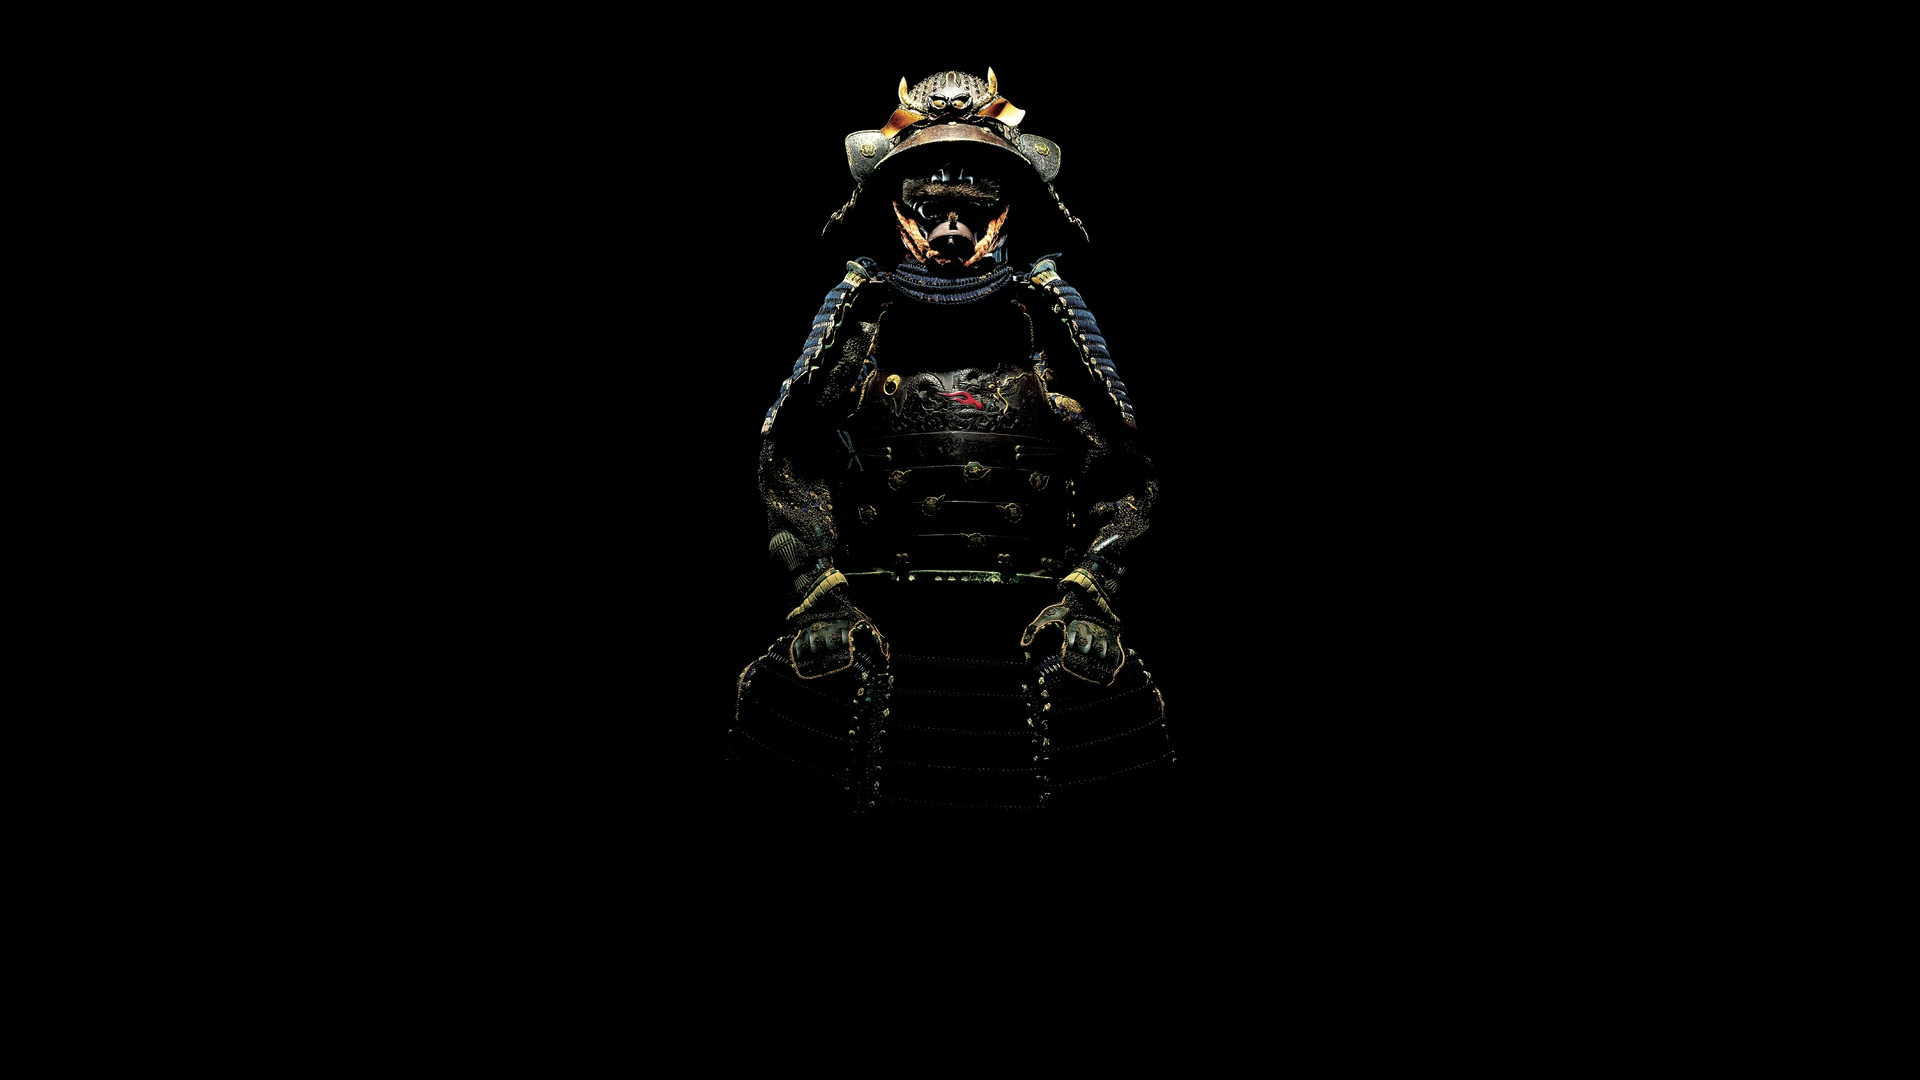 48 Samurai Phone Wallpaper On Wallpapersafari